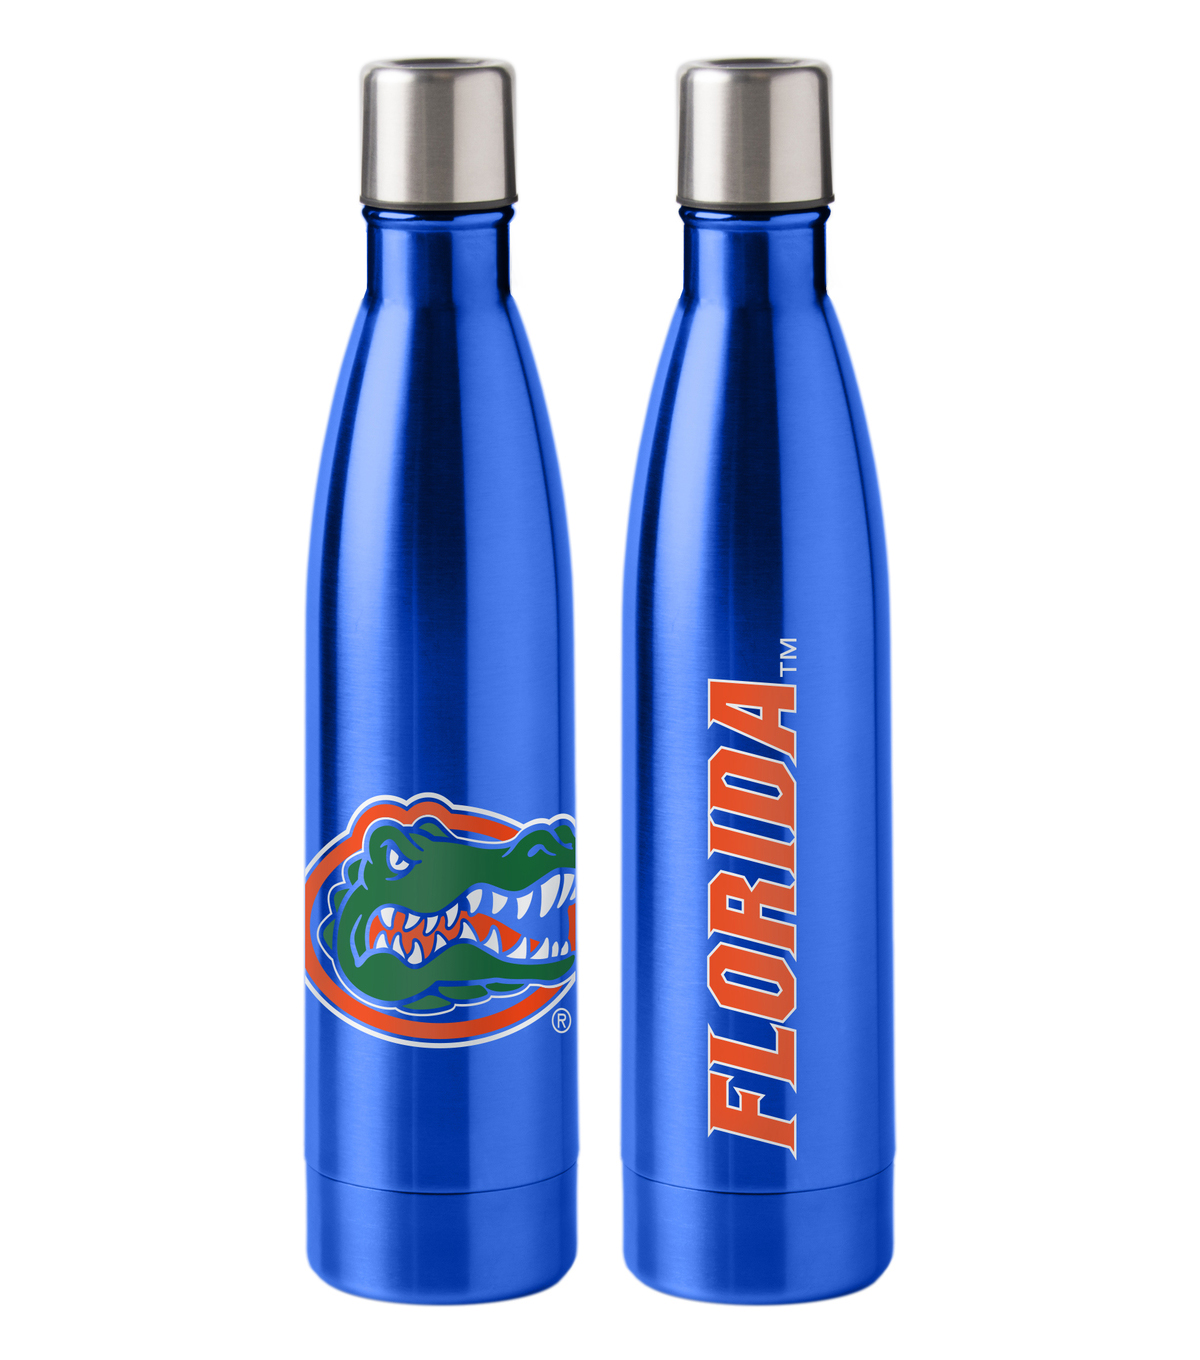 University of Florida 18 oz Insulated Stainless Steel Water Bottle